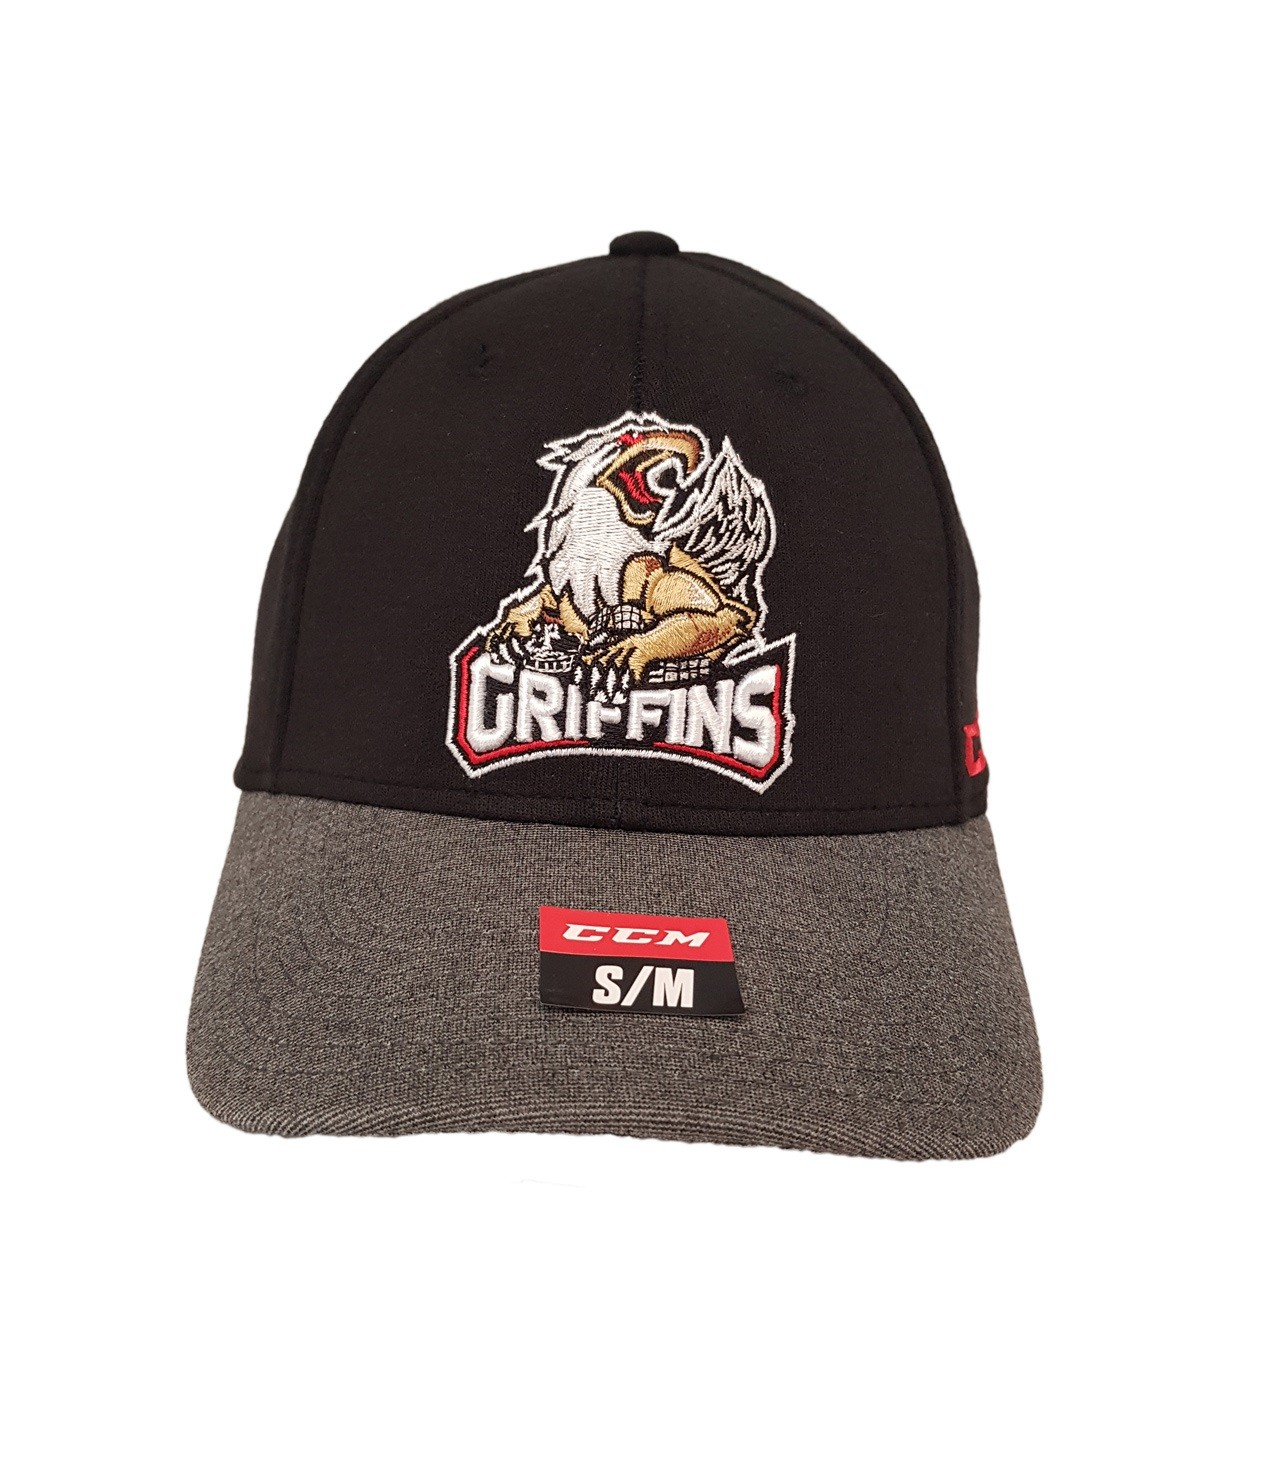 CCM Griffins Adult Structured Flex Cap